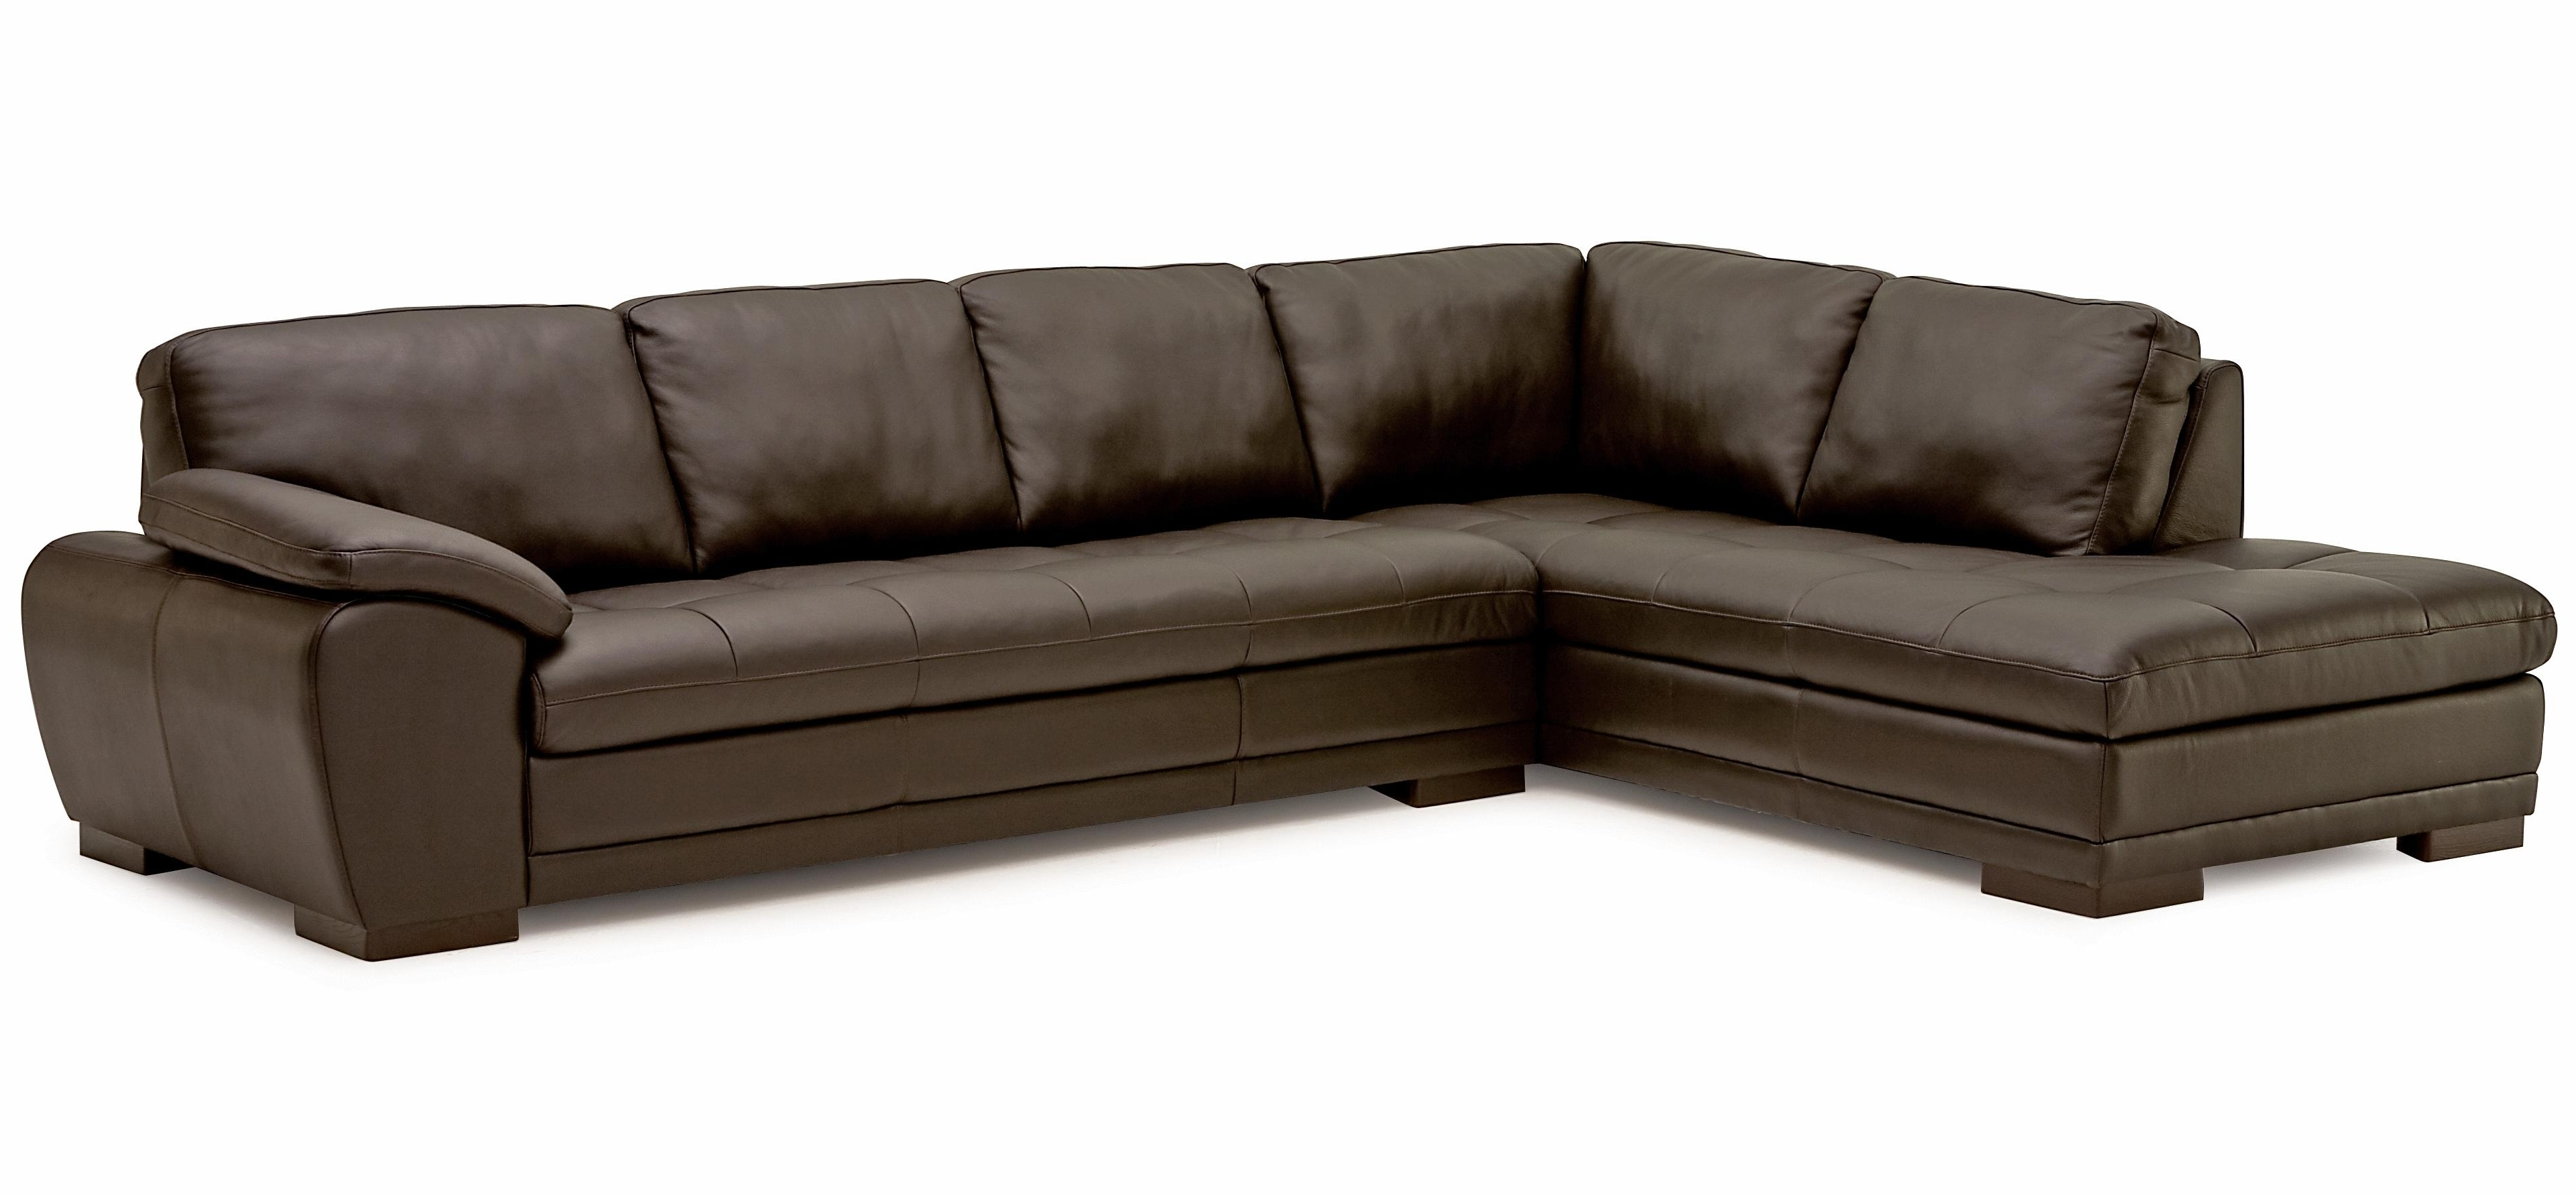 Miami Sectional Sofas Throughout Current Palliser Miami Contemporary 2 Piece Sectional Sofa With Left (View 4 of 20)